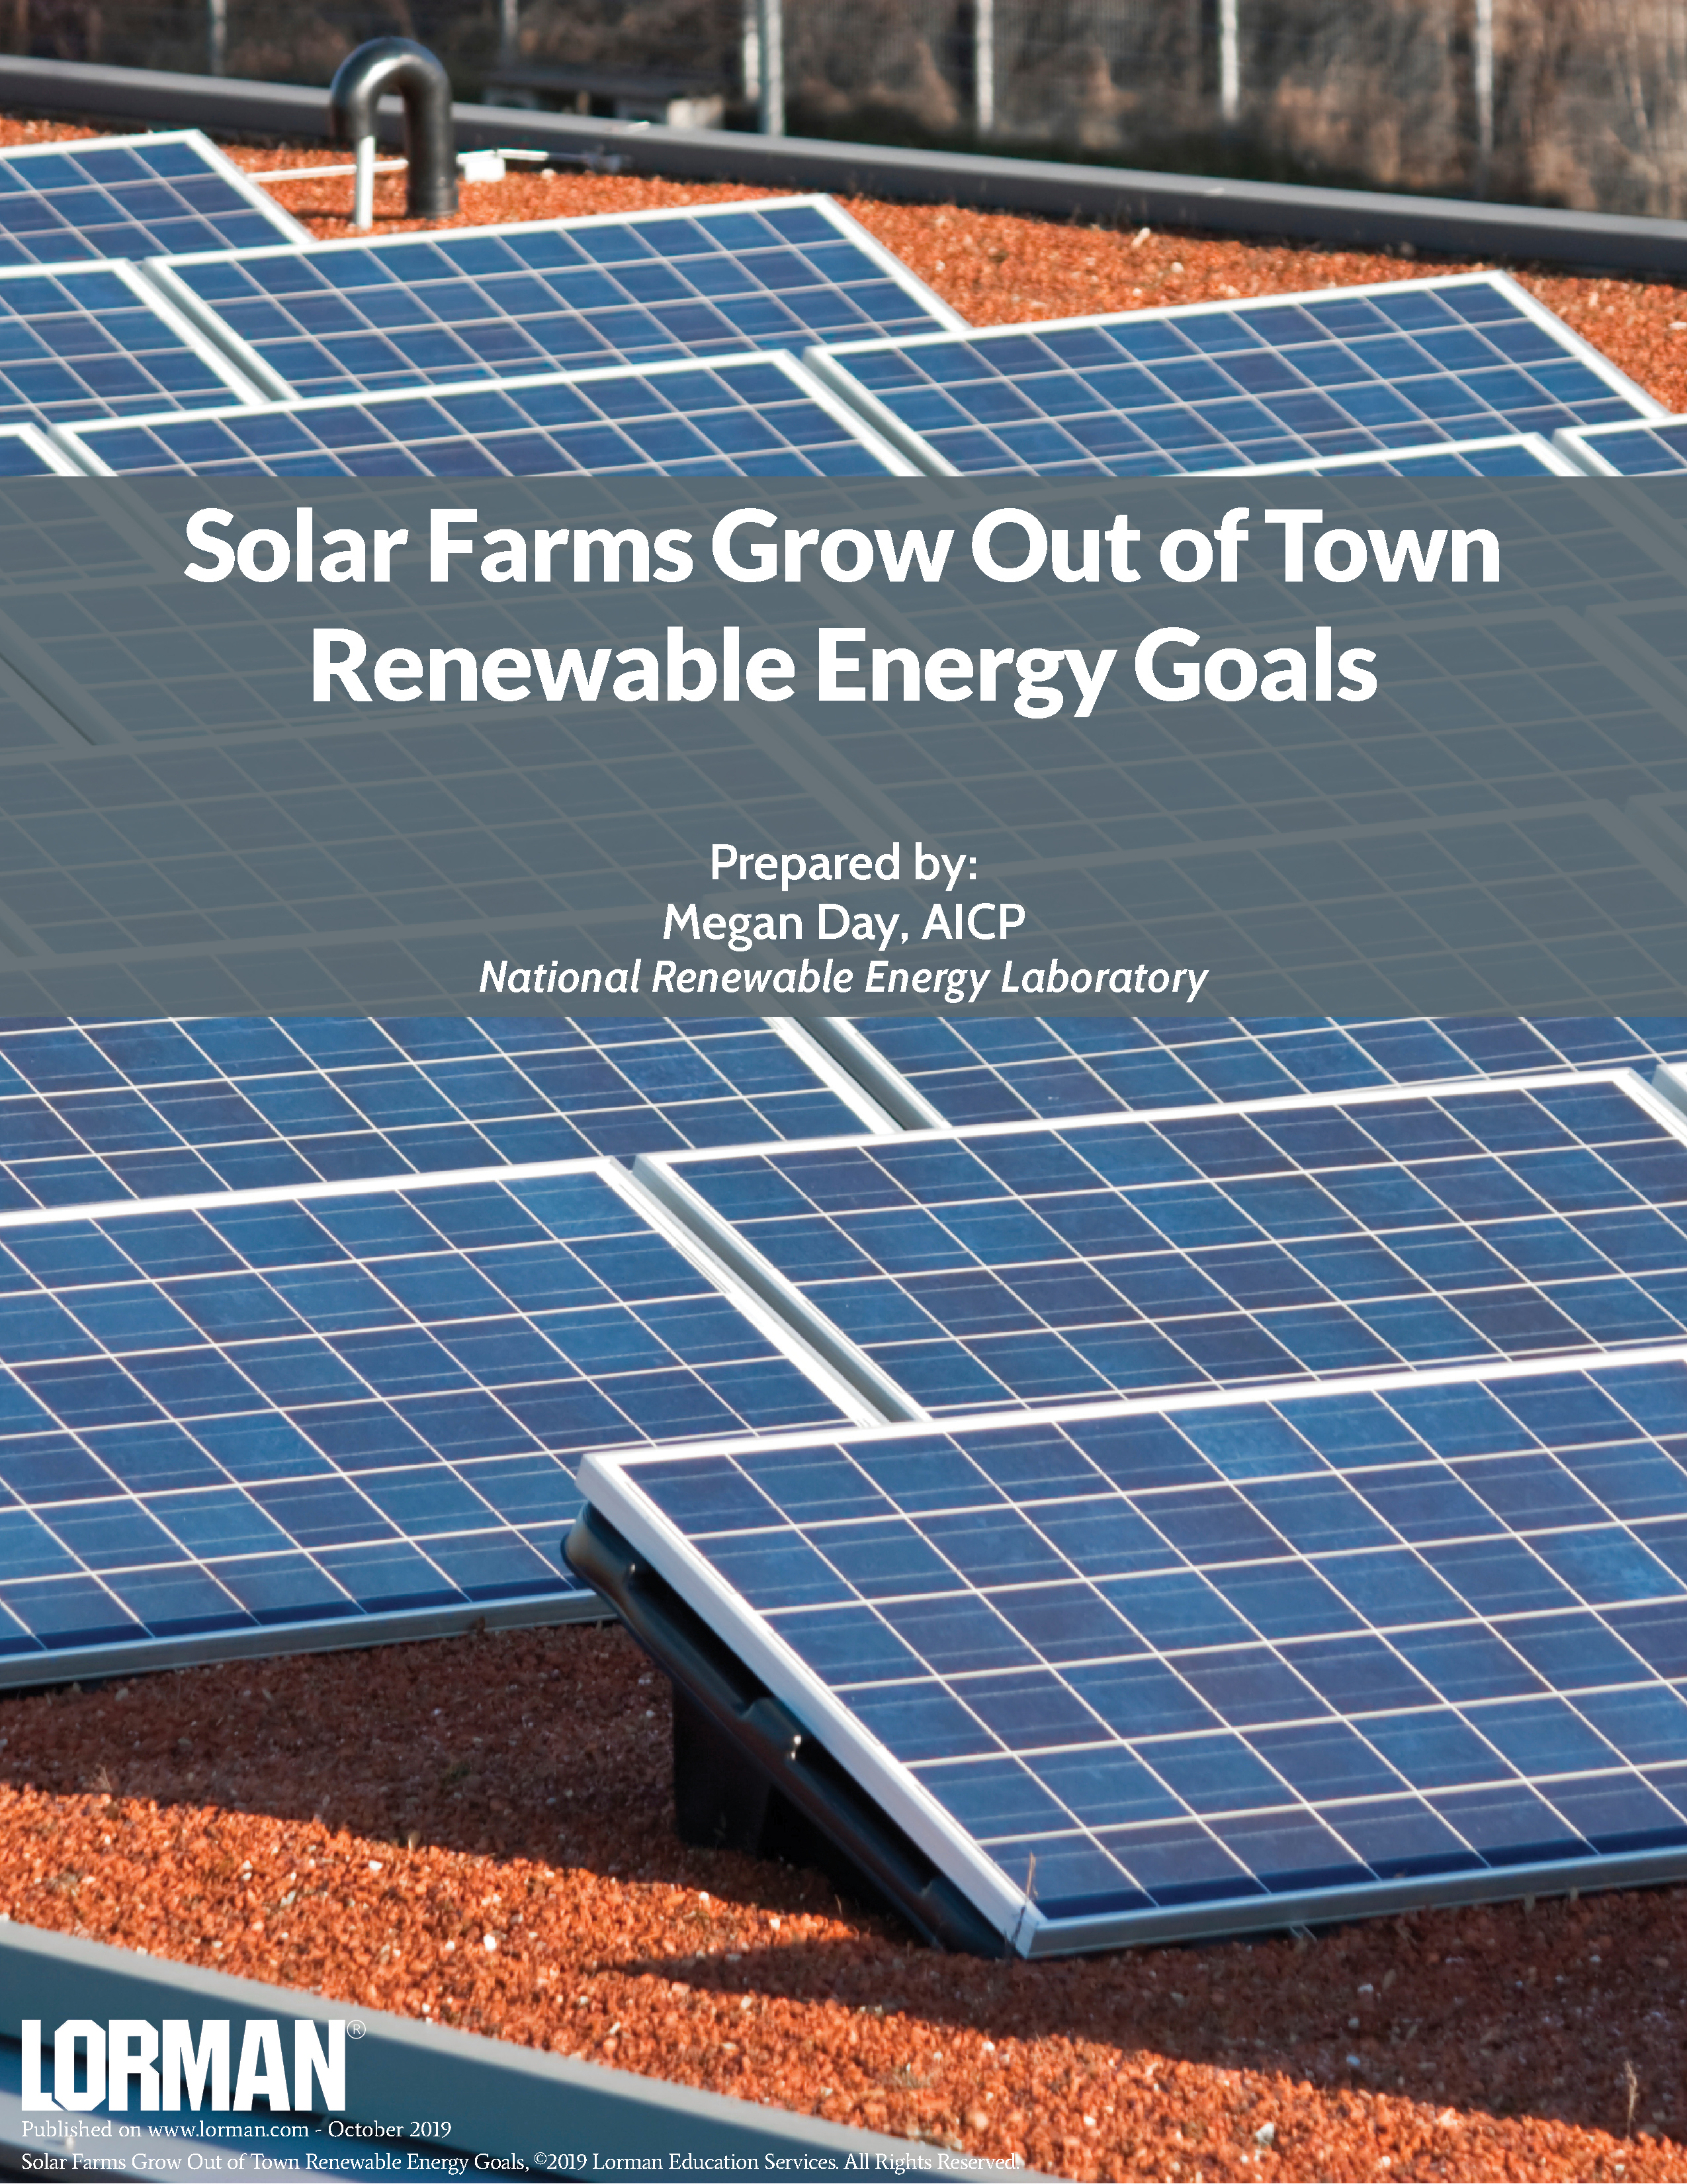 Solar Farms Grow Out of Town Renewable Energy Goals